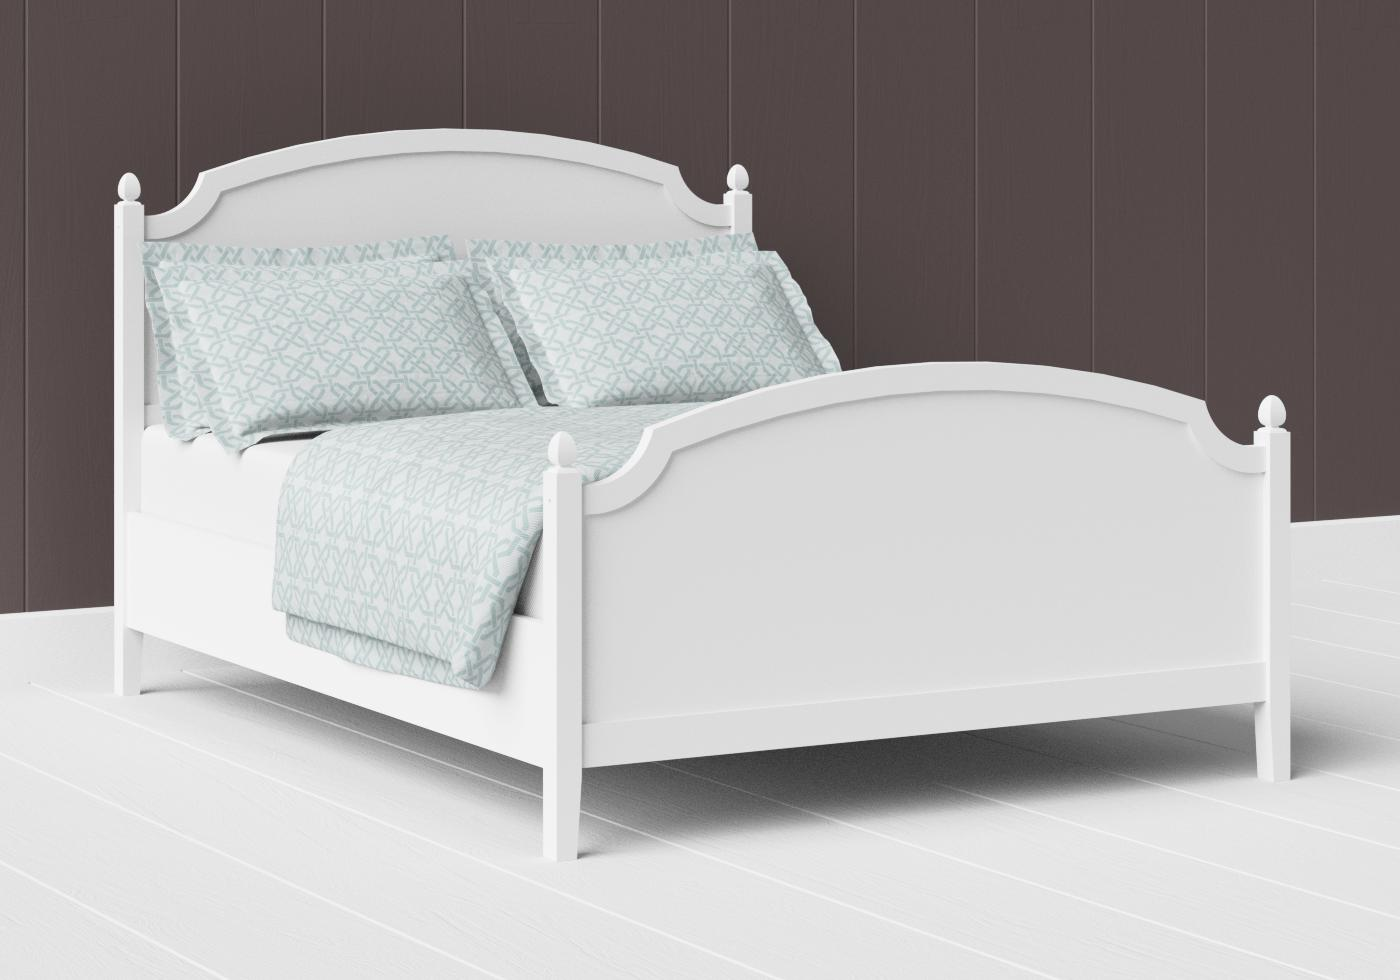 Kipling painted wood bed in satin white